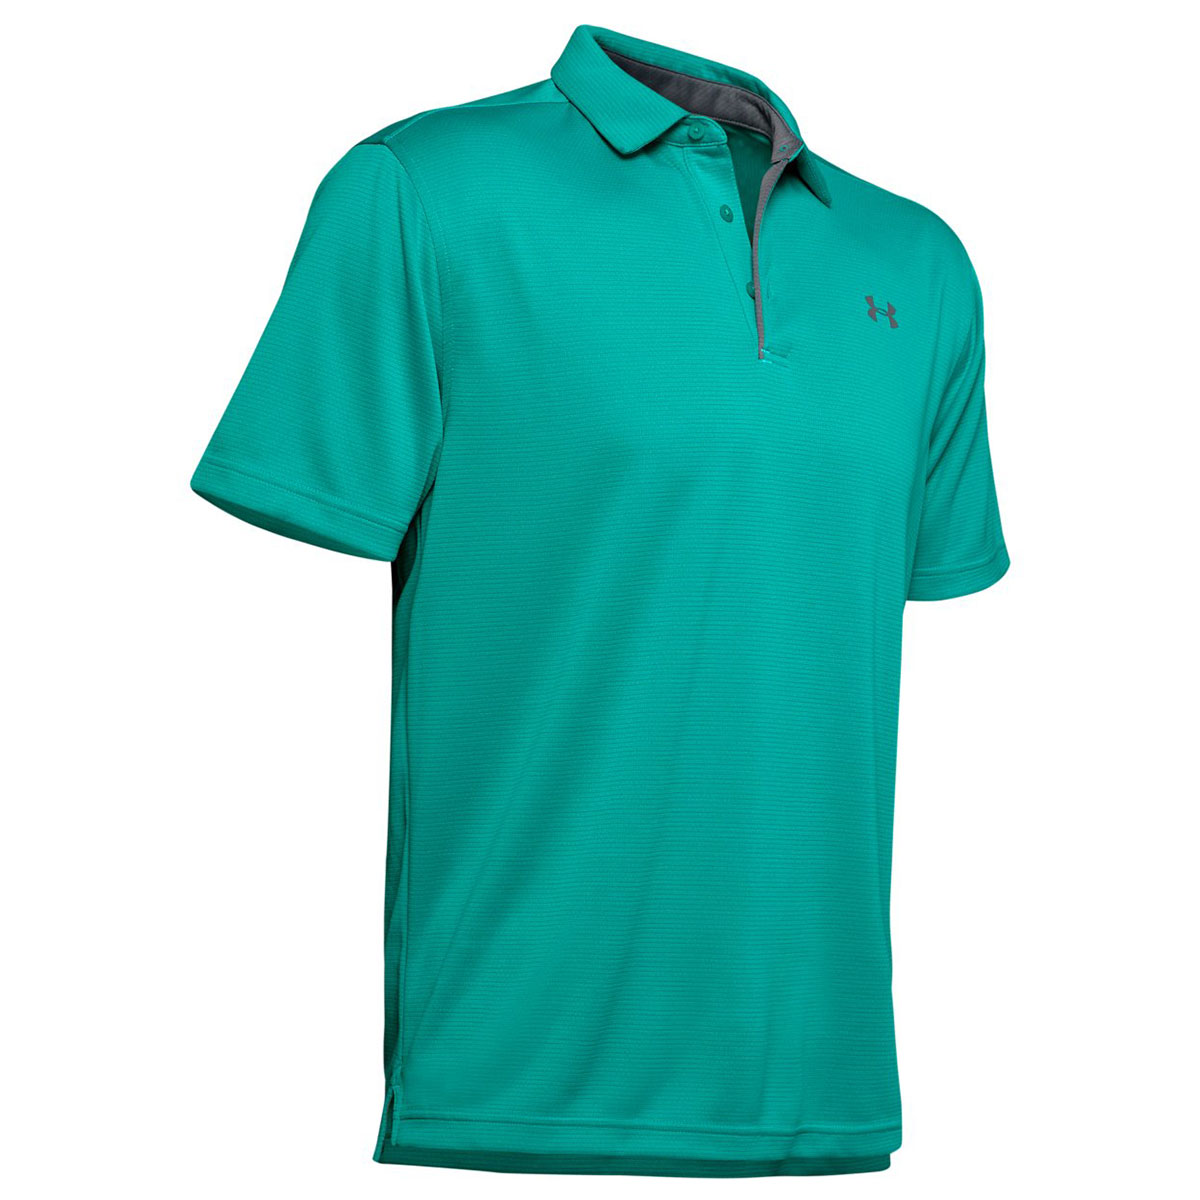 Under-Armour-Mens-Golf-Tech-Wicking-Textured-Soft-Light-Polo-Shirt thumbnail 72